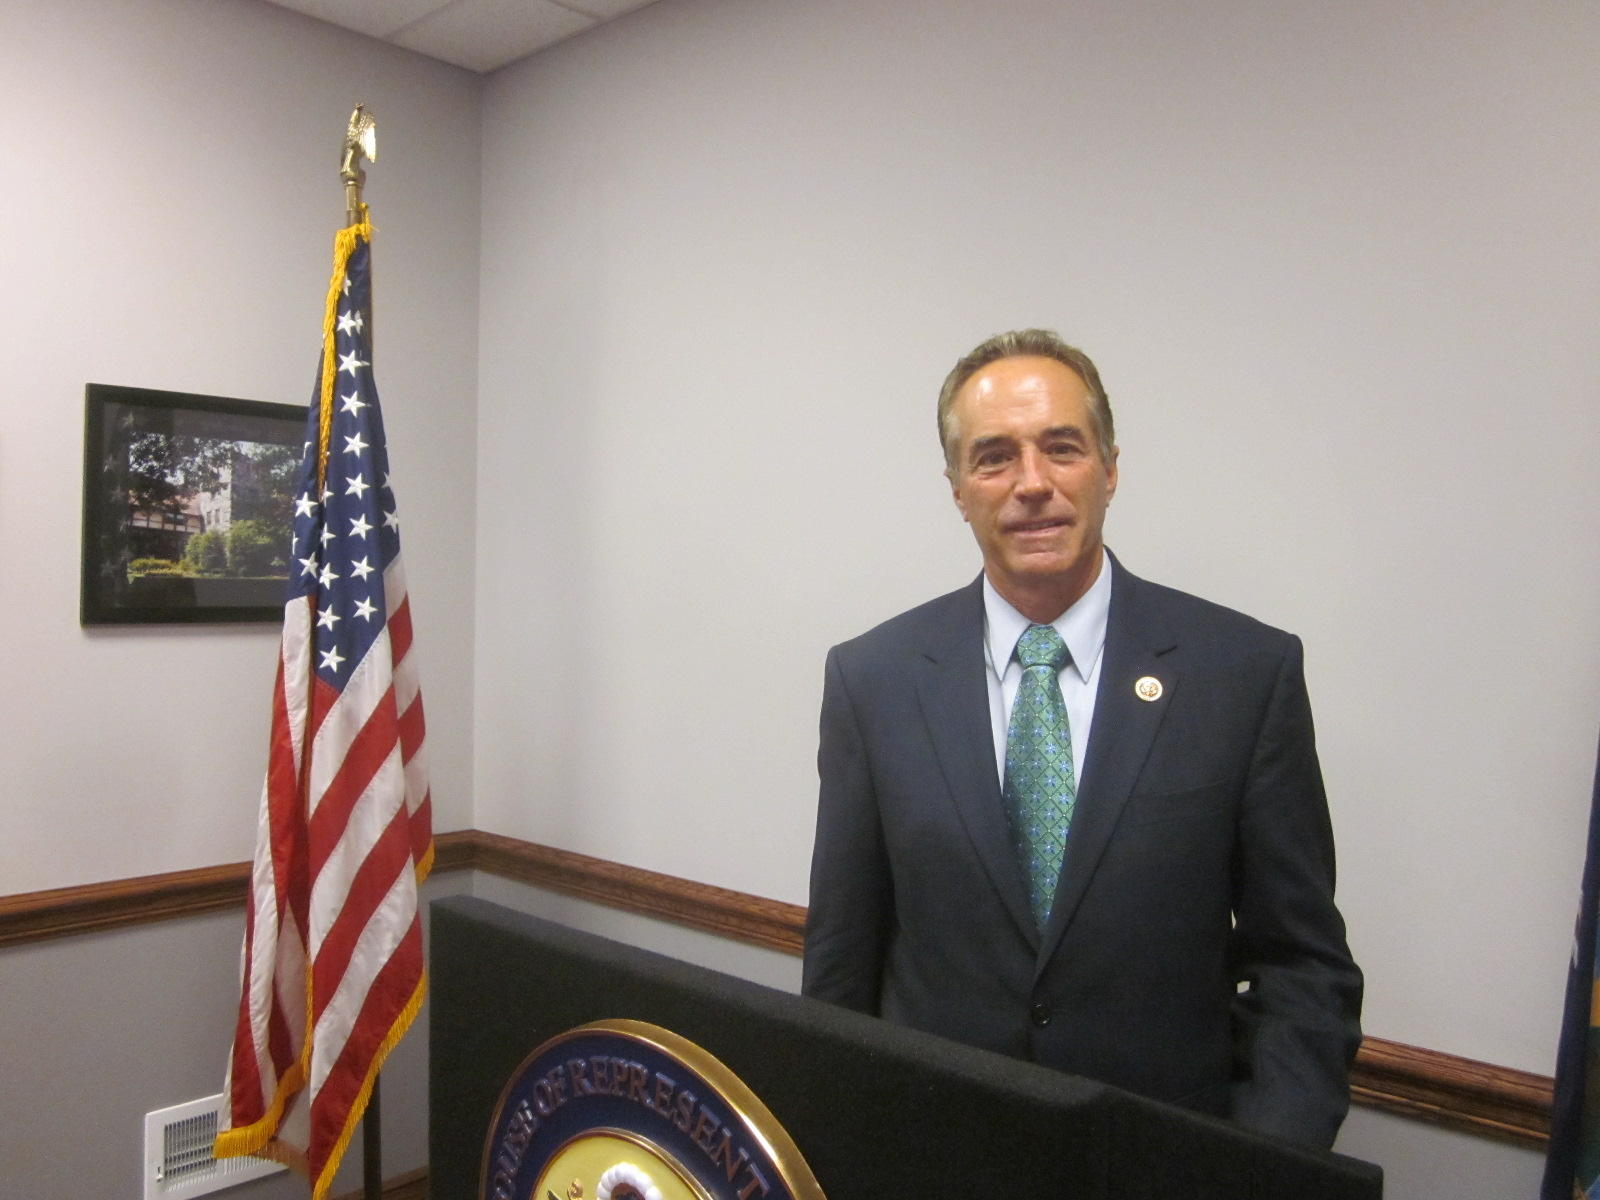 House ethics committee investigating Rep. Chris Collins for insider trading allegations